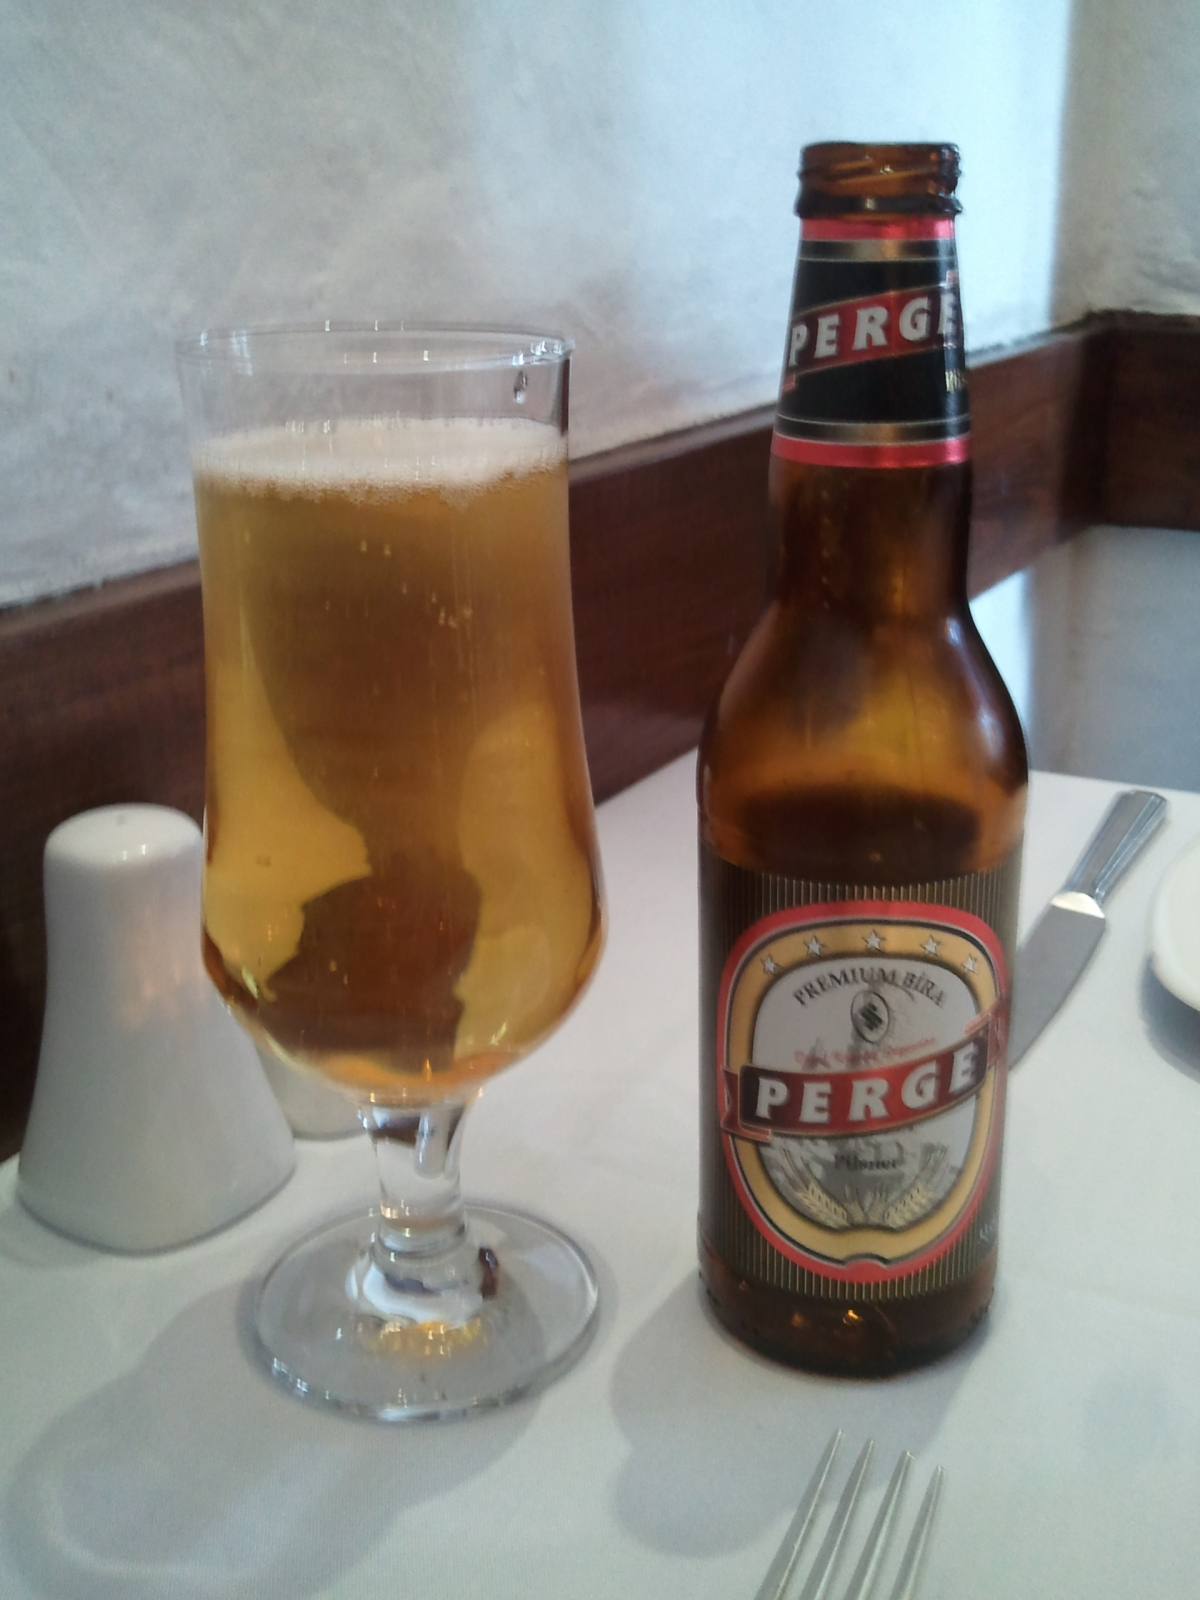 Perge Pilsner: Turkish delight